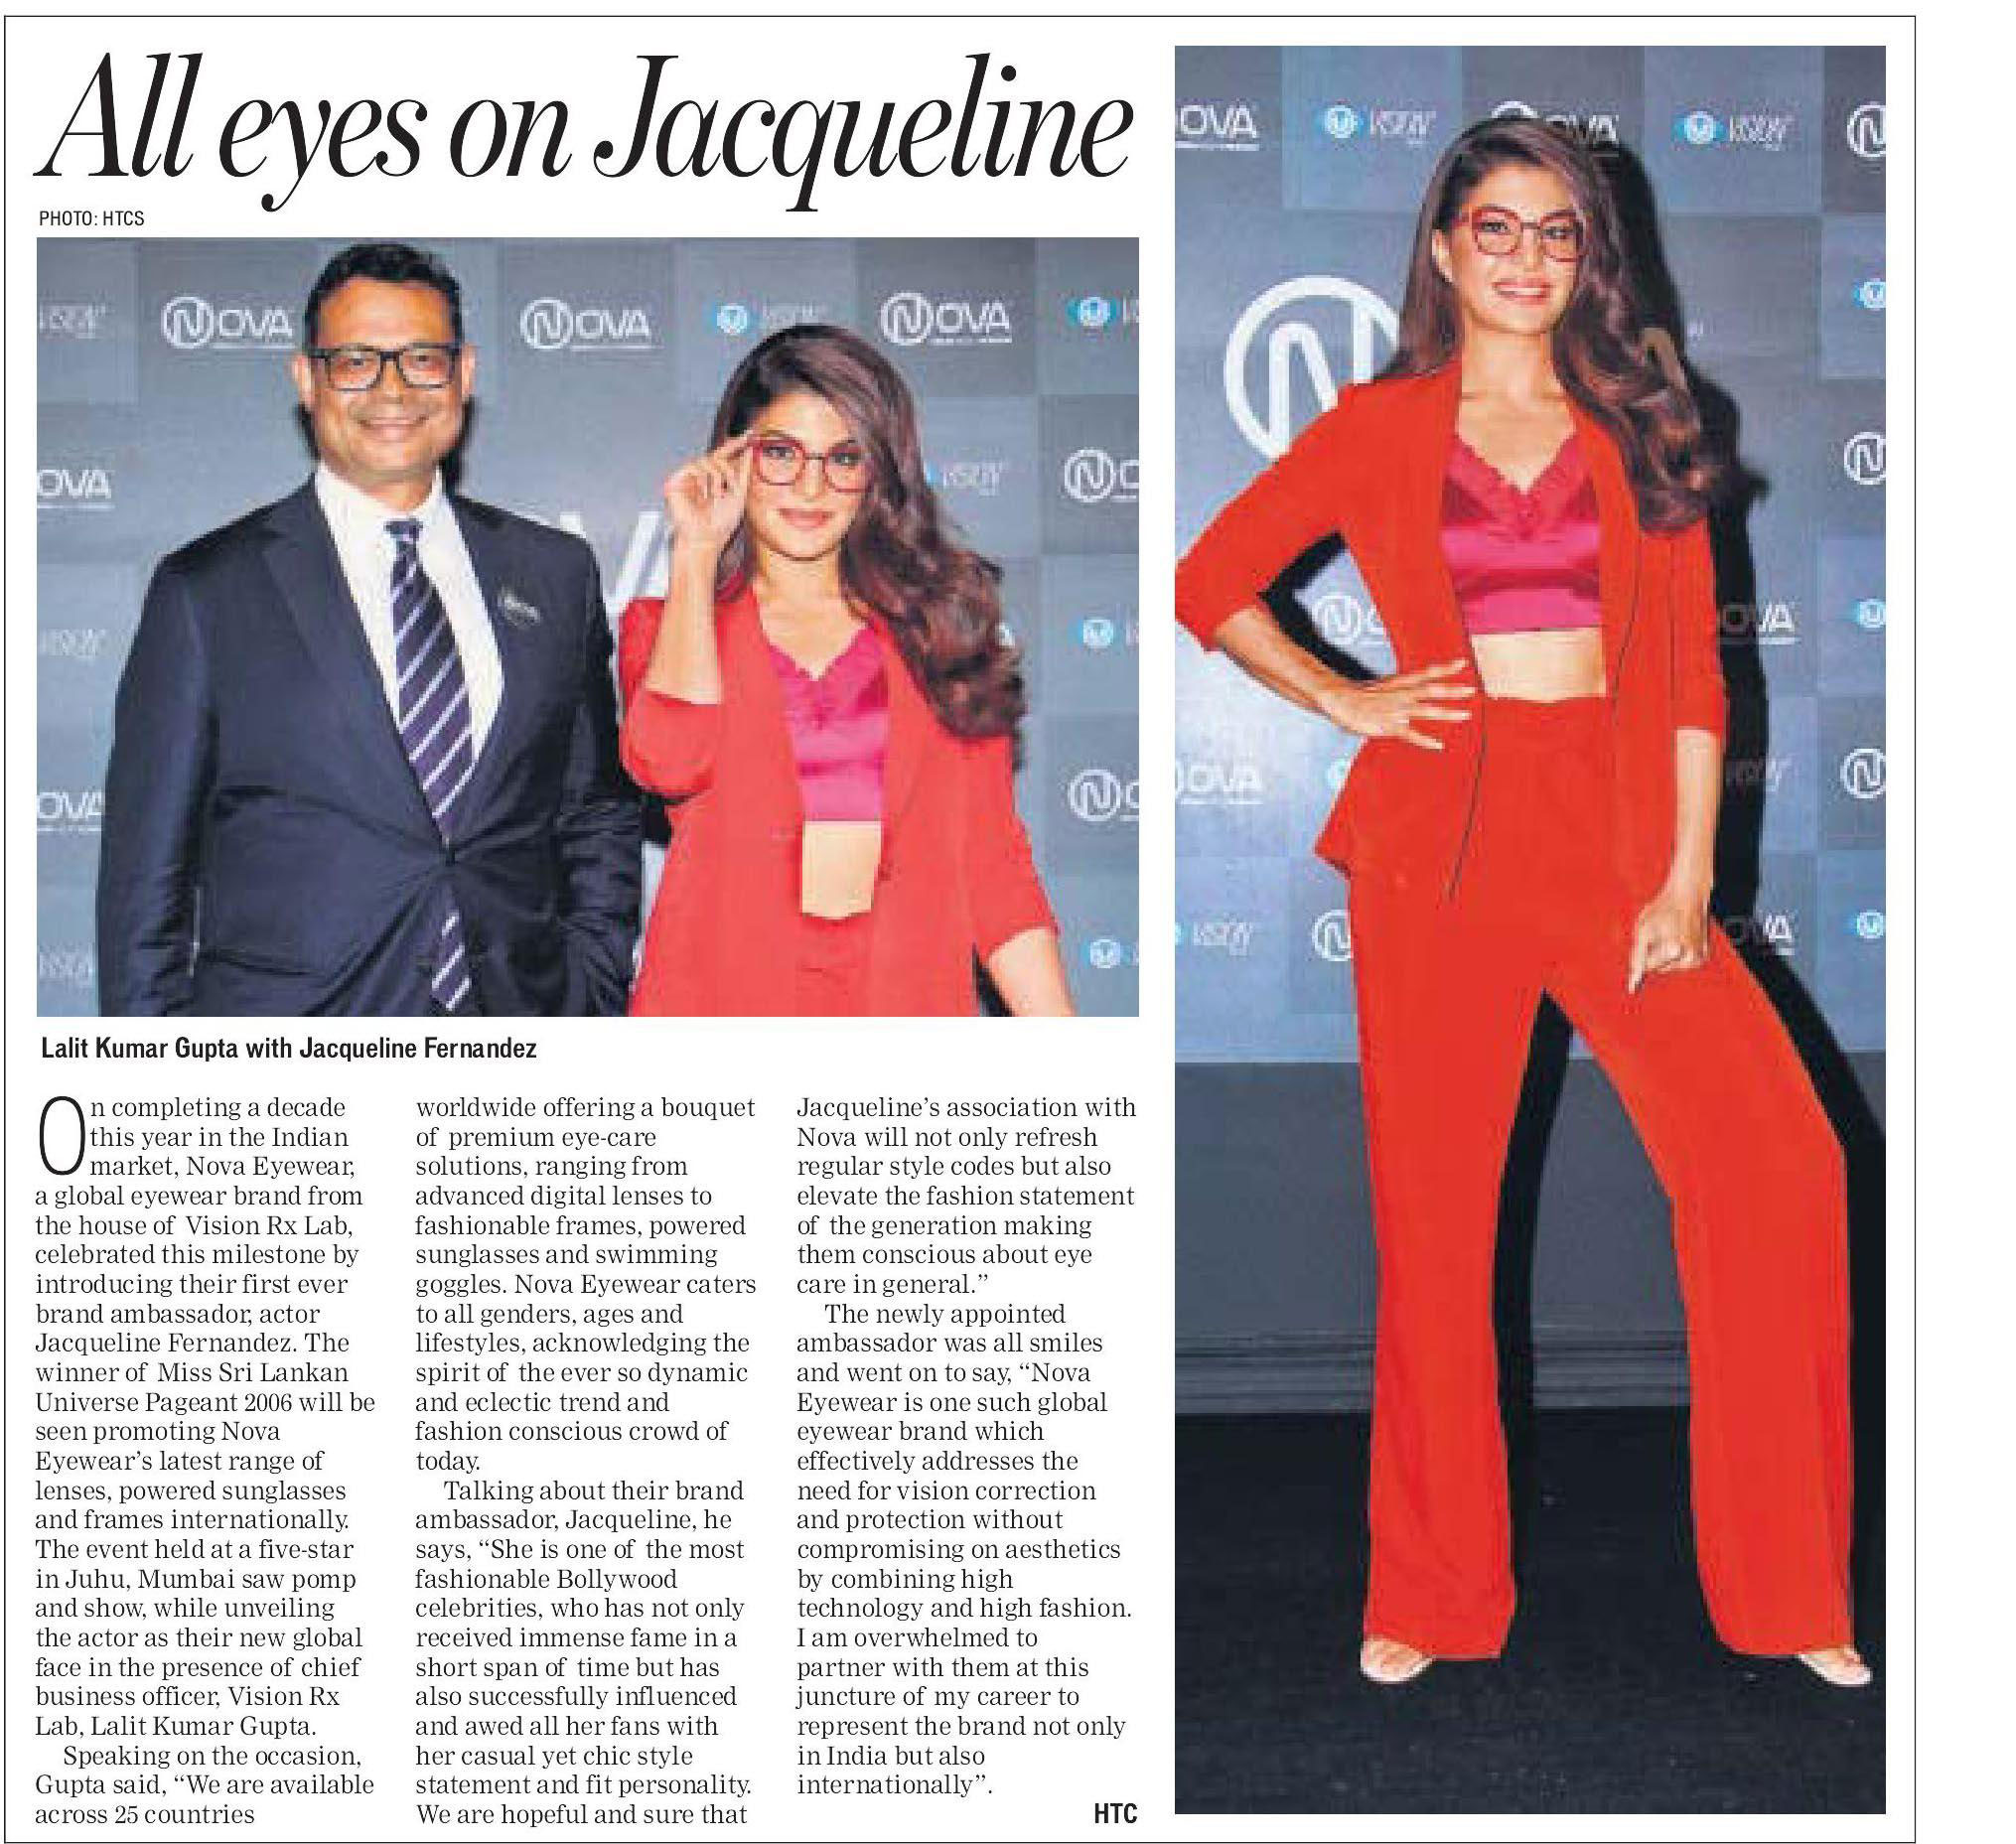 All eyes on Jacqueline